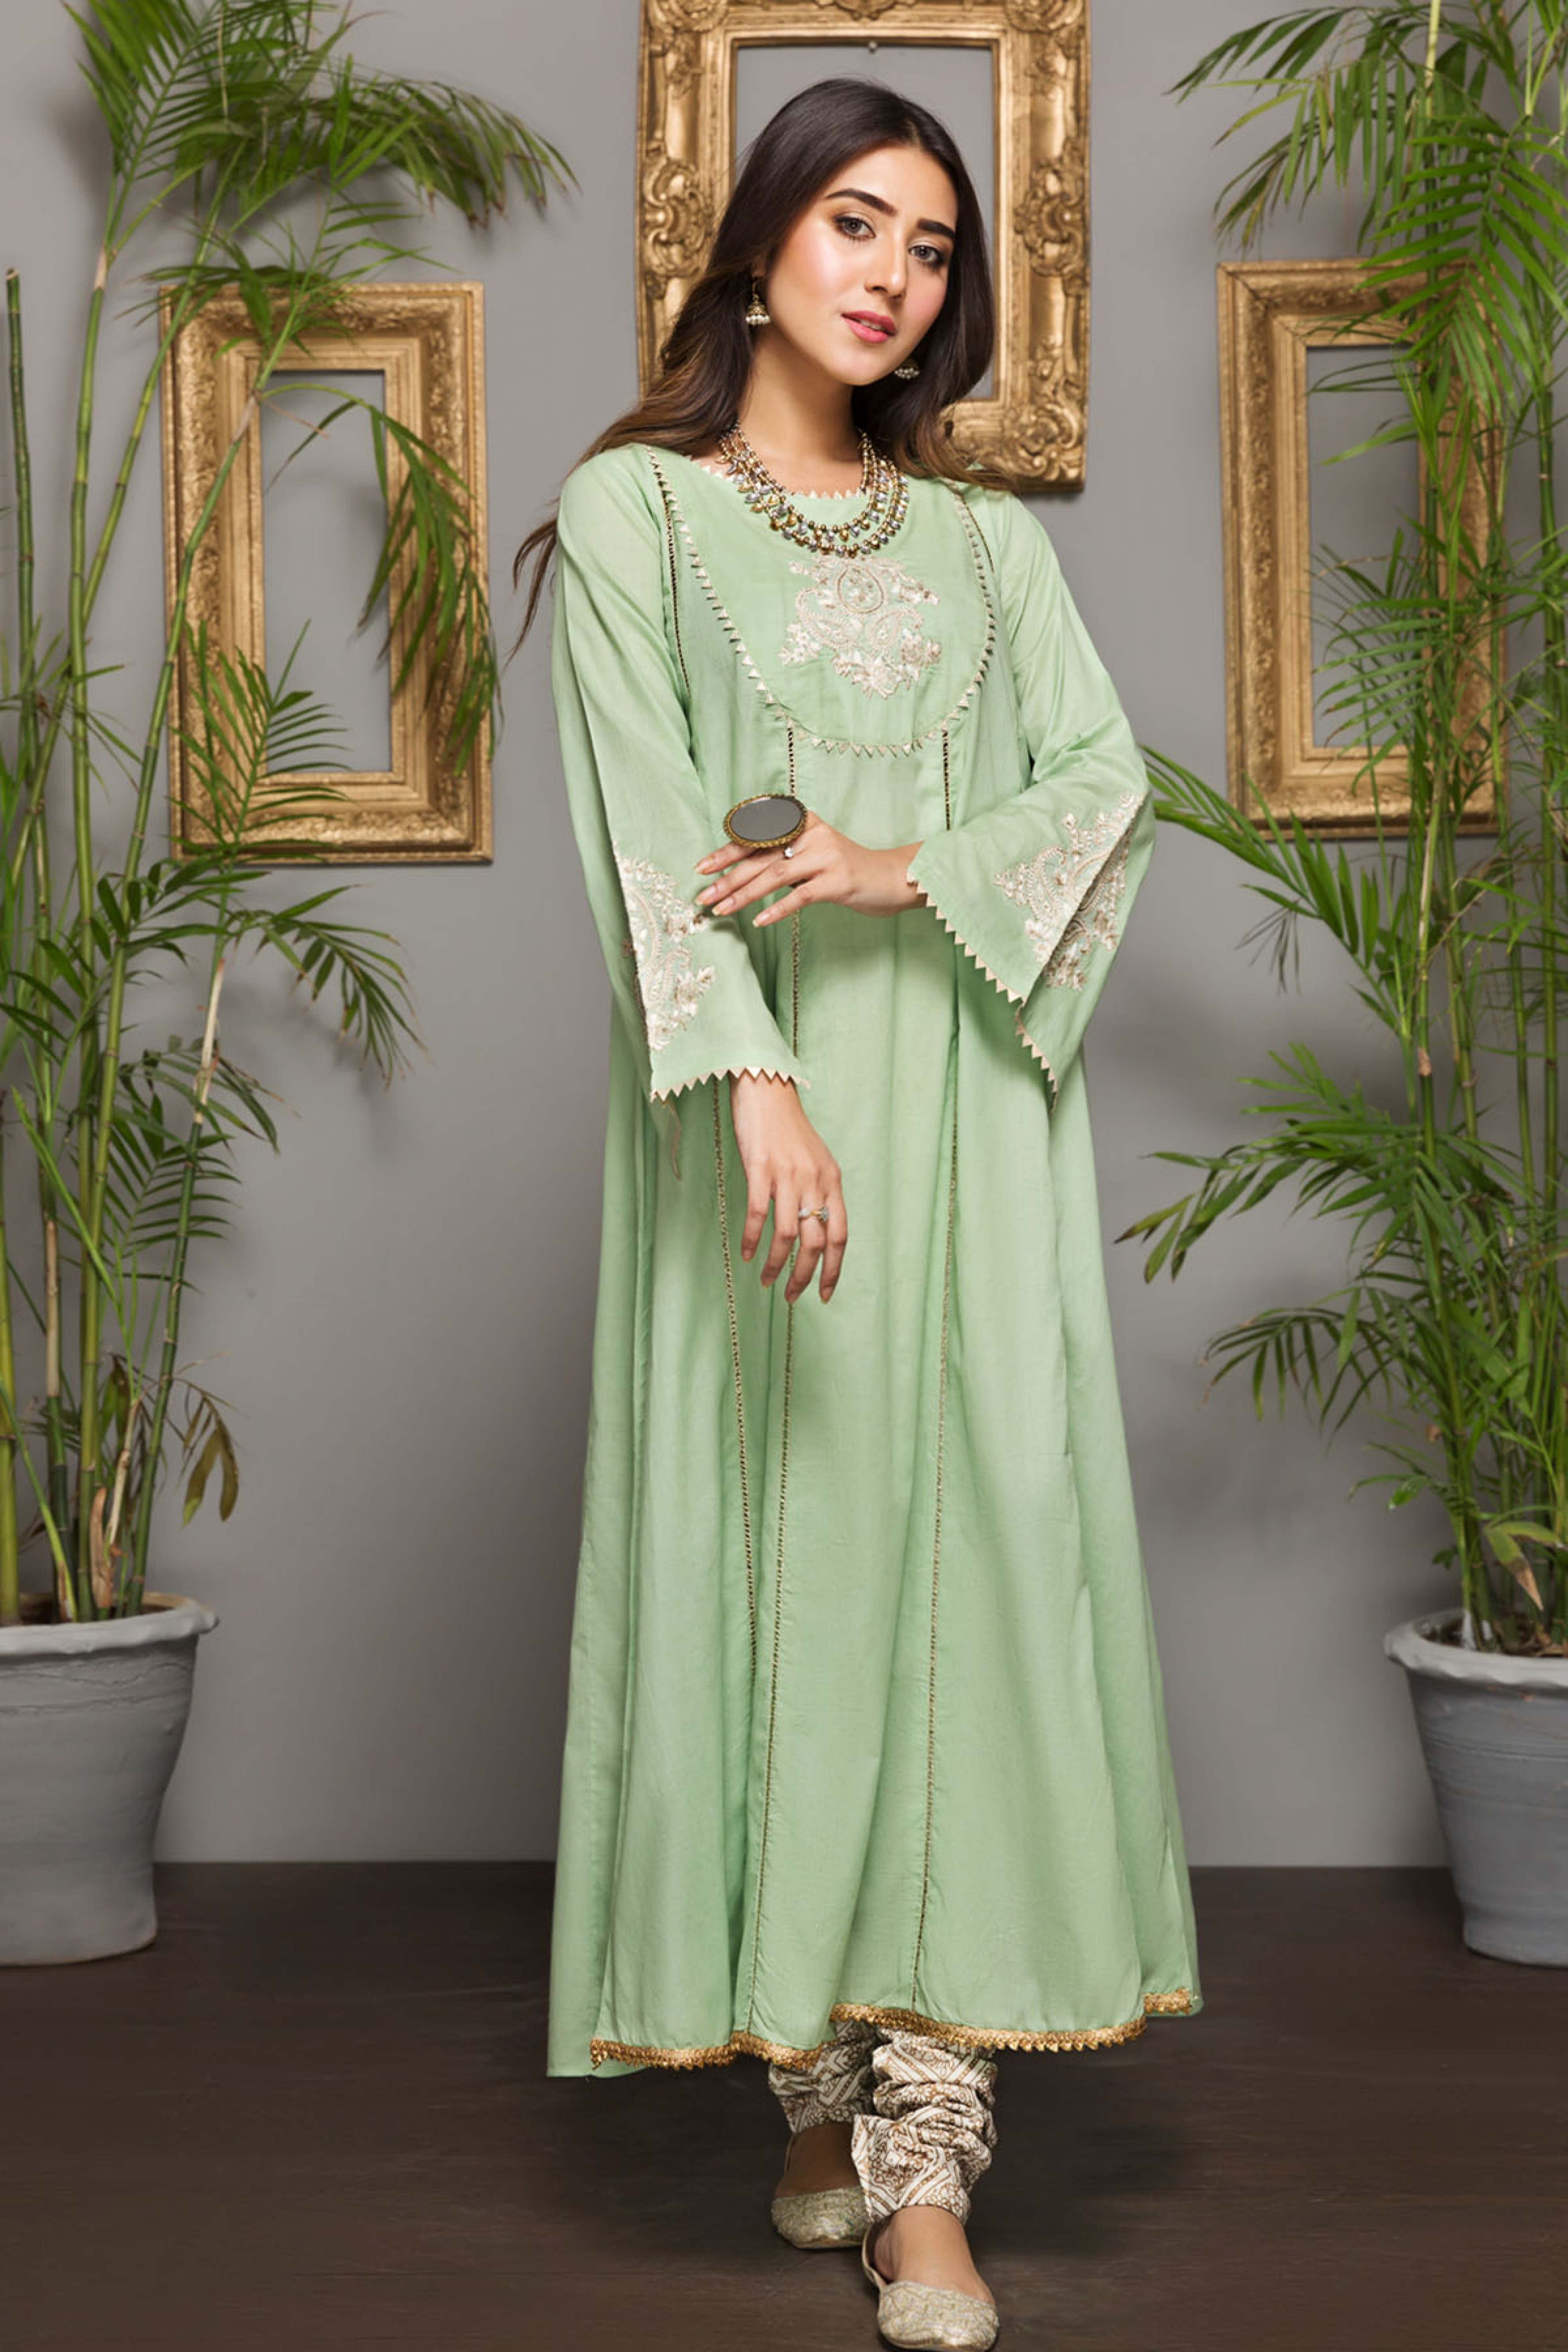 GREEN ORCHID (EMBROIDERED FROCK )